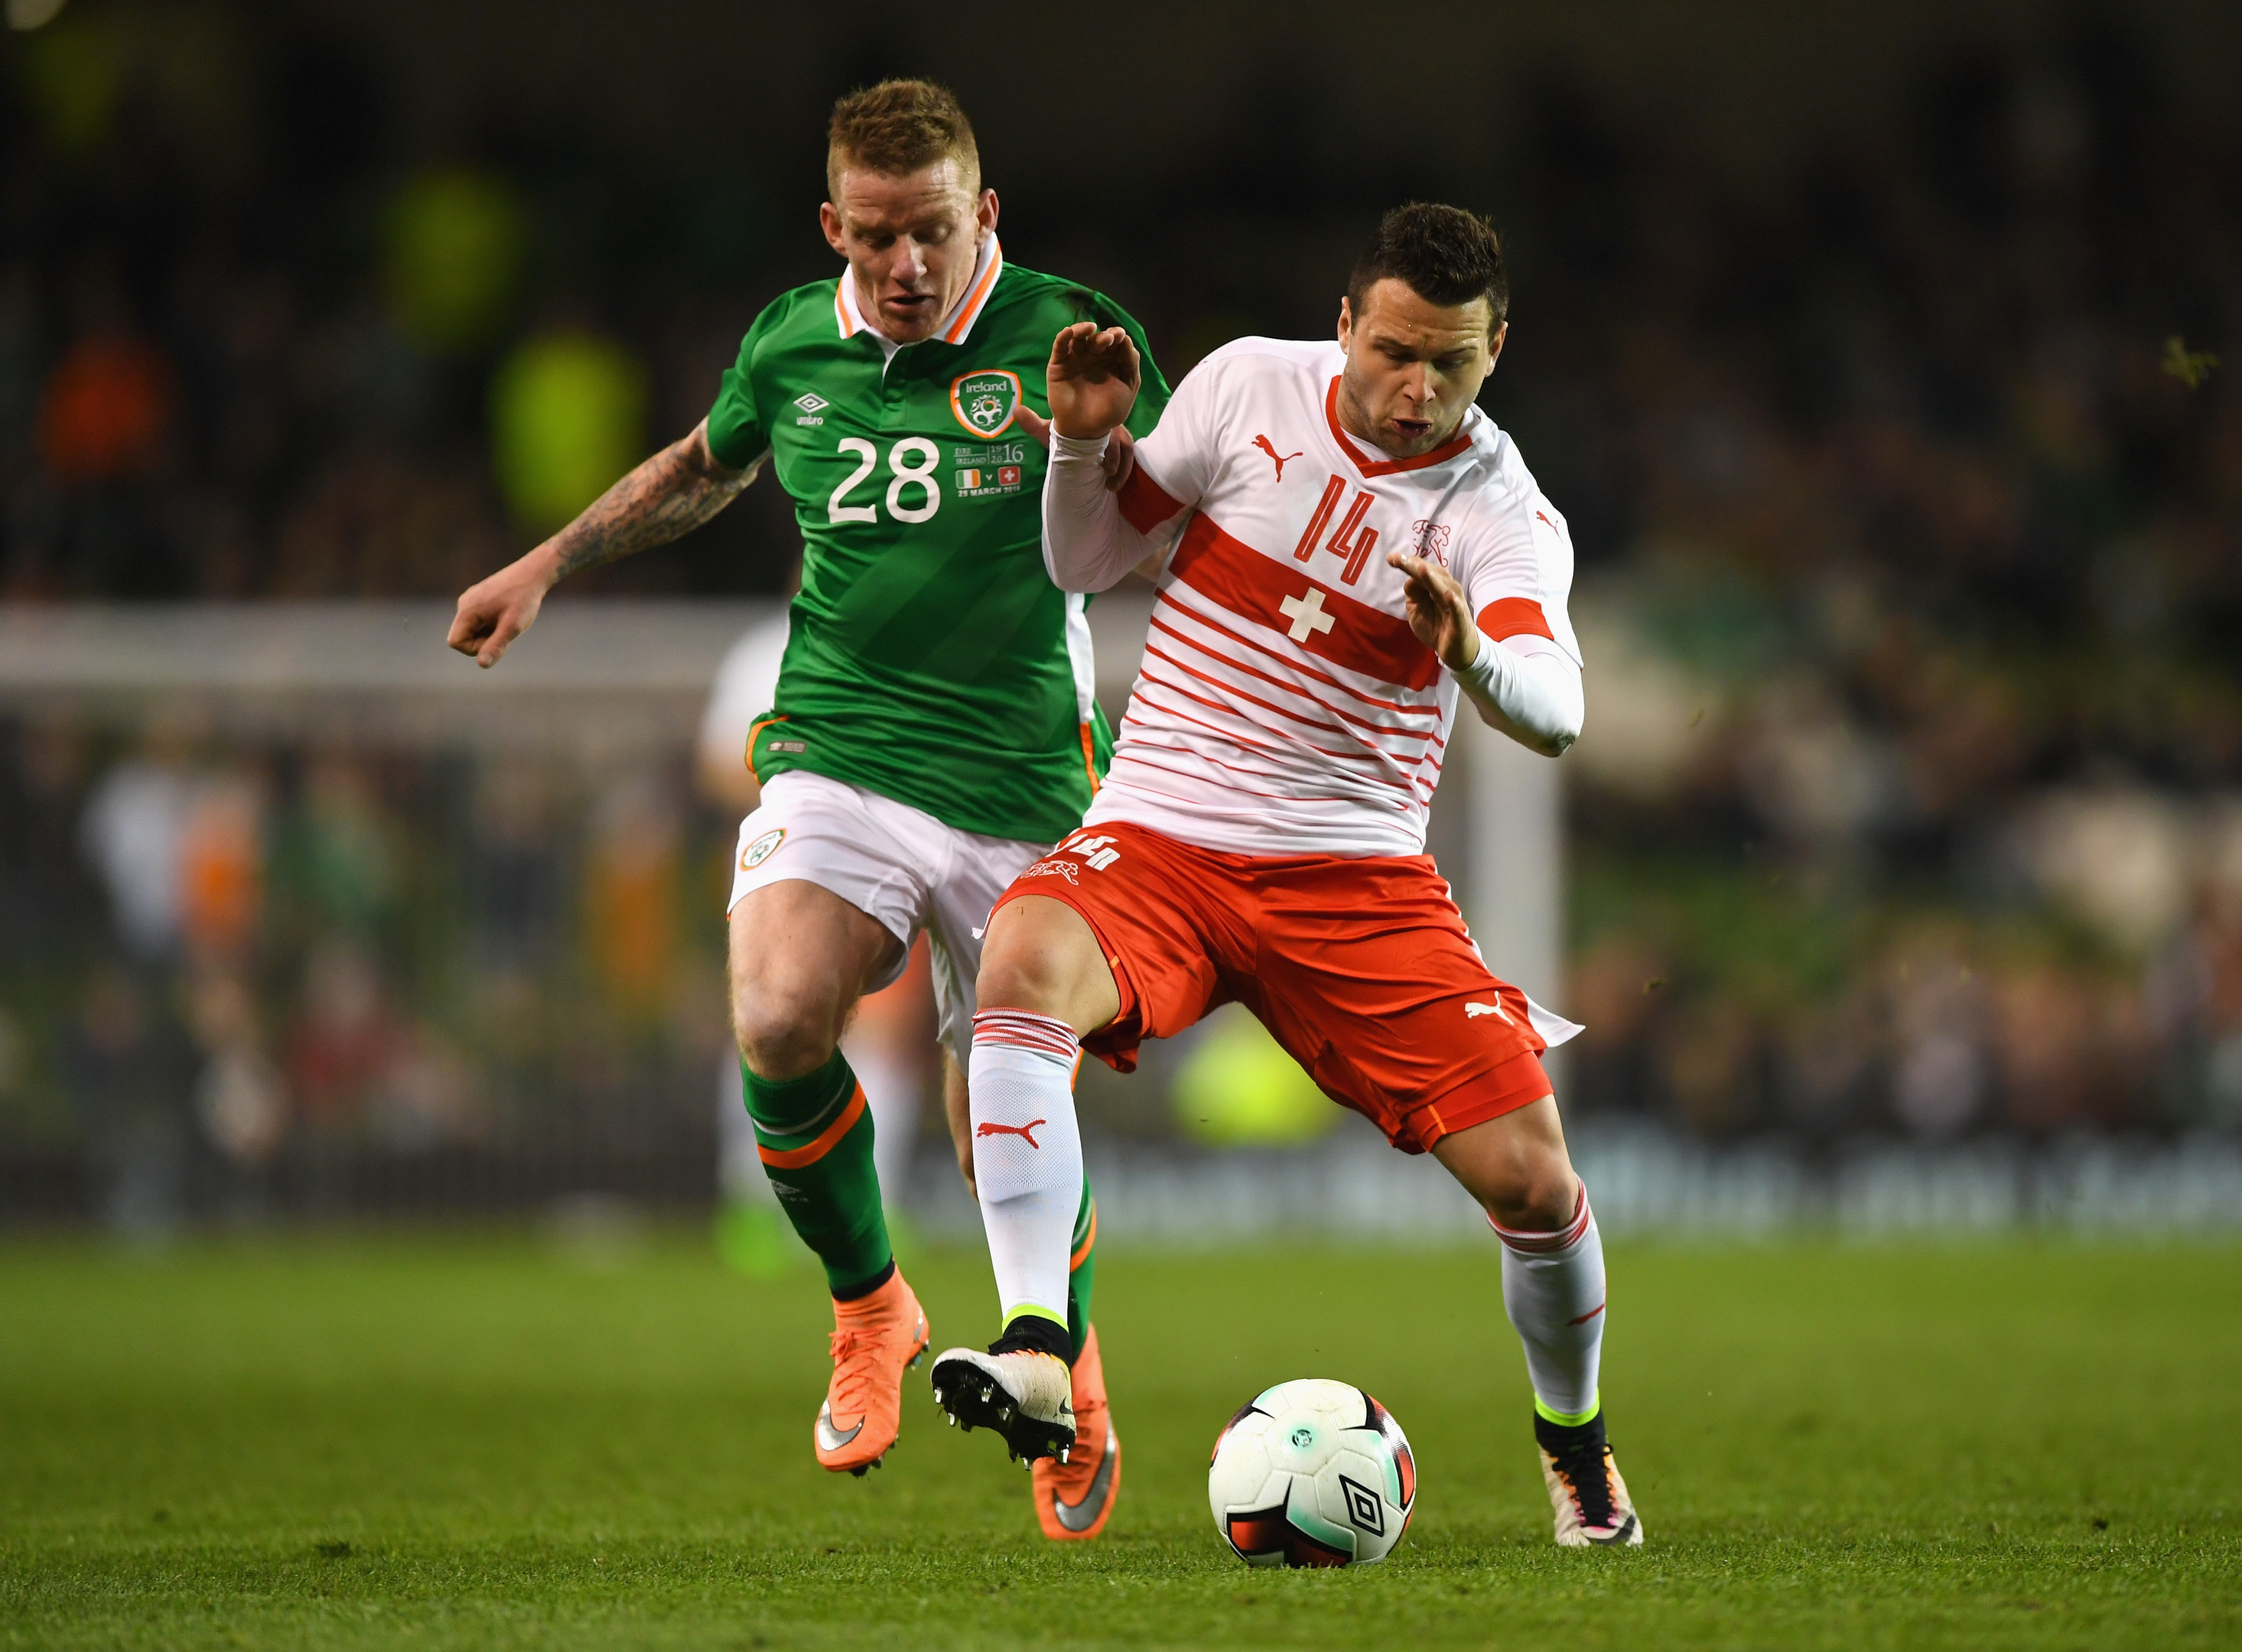 Jonny Hayes (left) has been called up for the Republic of Ireland, along with goalkeeper Danny Rogers.